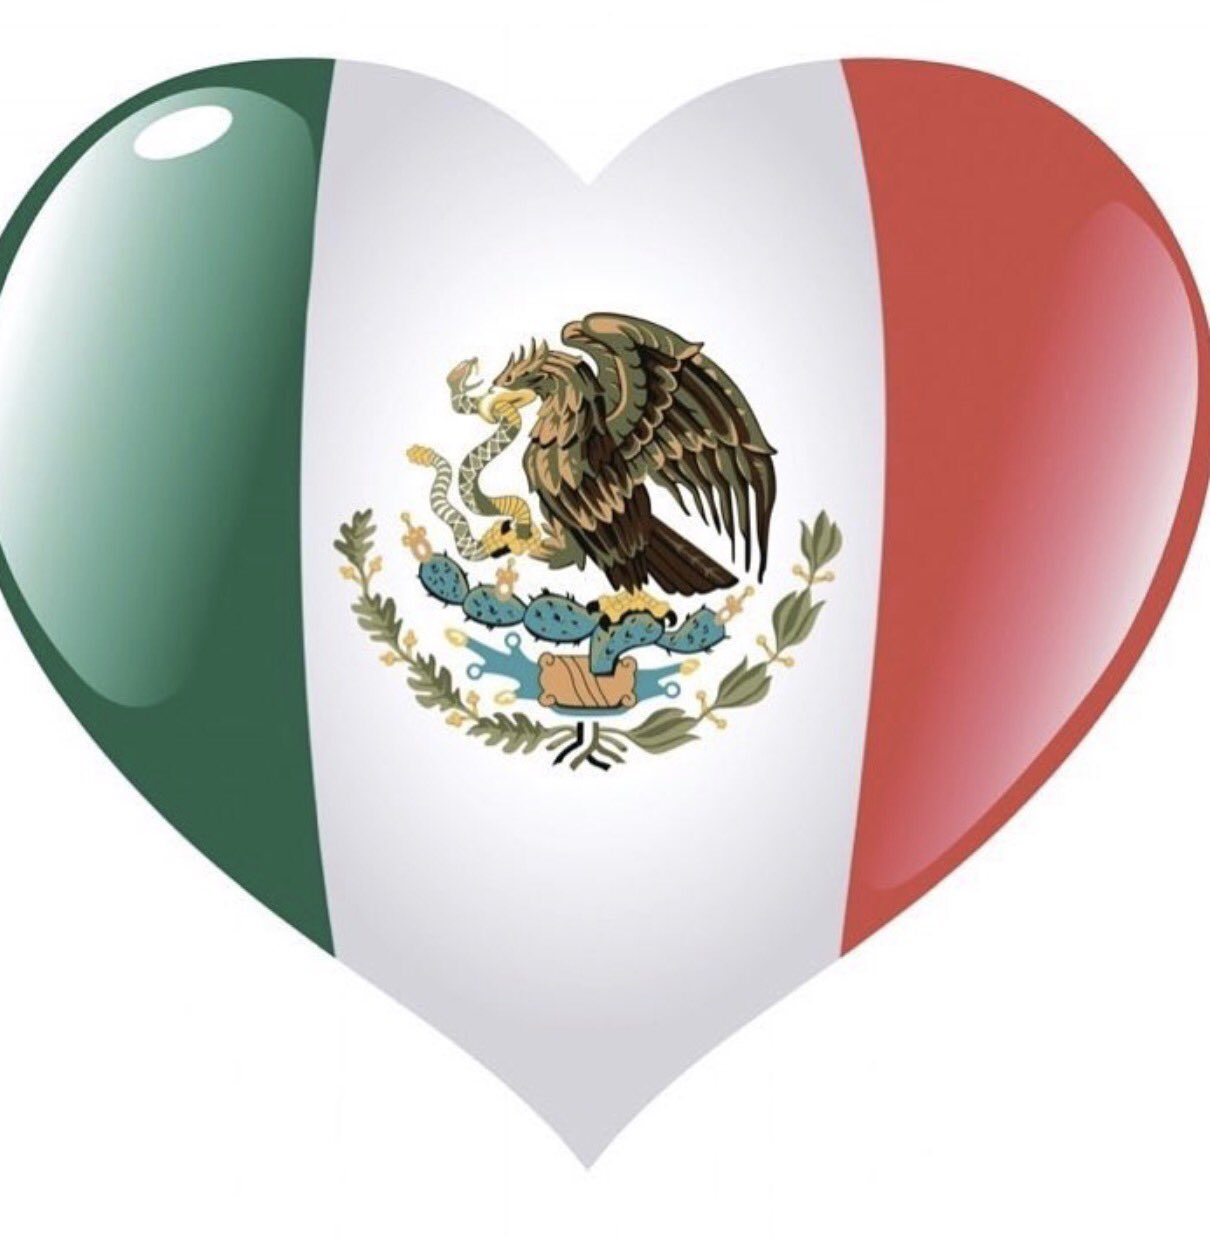 PRAY FOR MÉXICO ����✊������ https://t.co/g9XiiFGINf